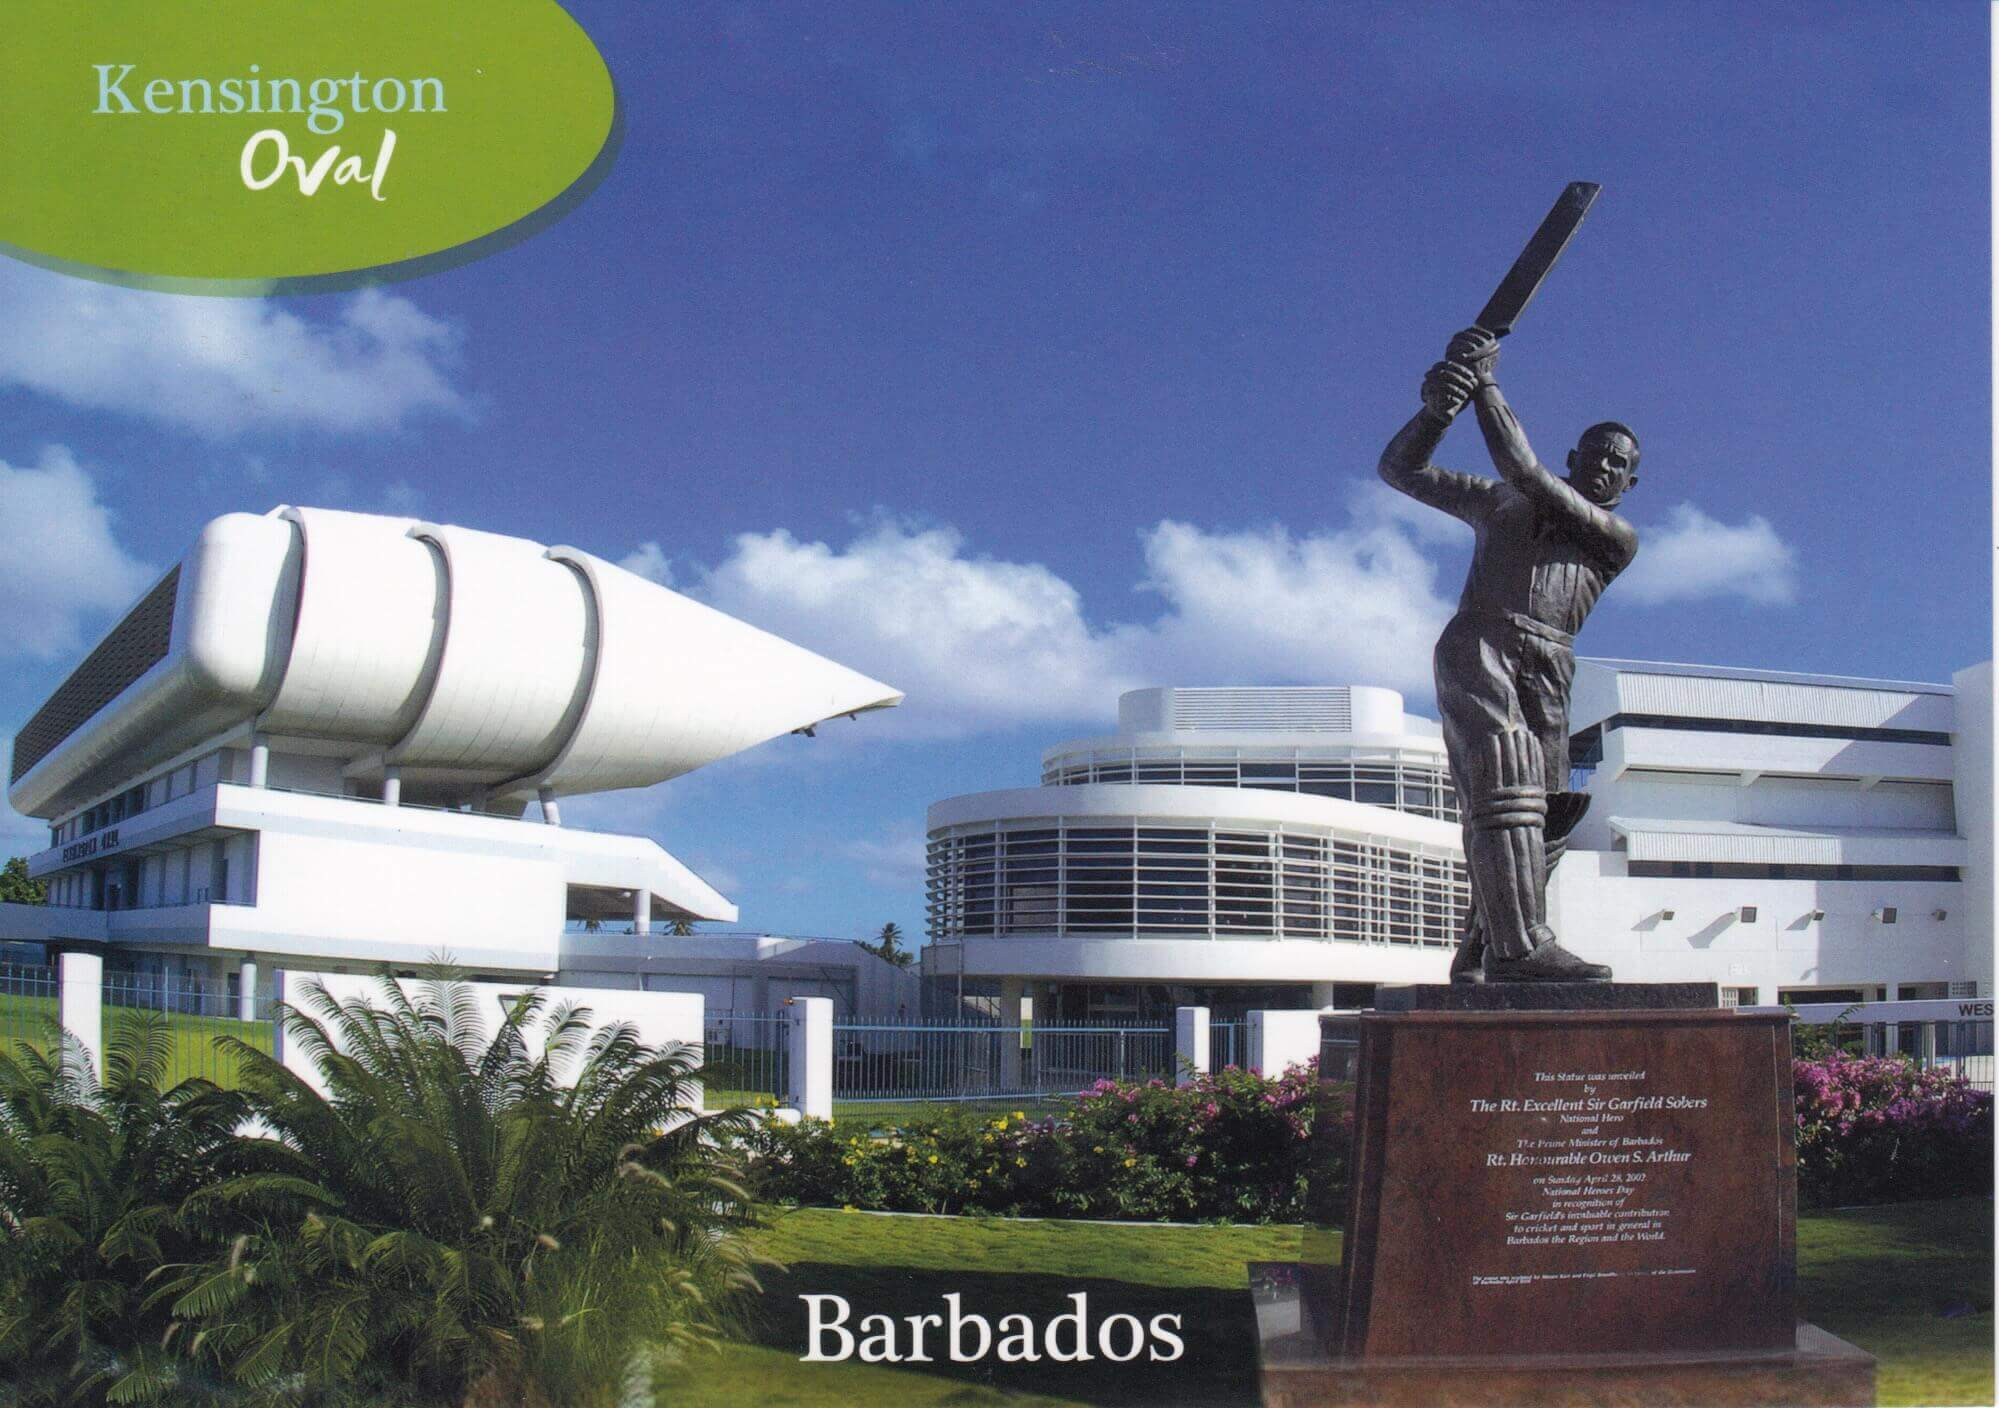 Barbados Stamps Pre Paid Postcard - Kensington Oval - Actual Card